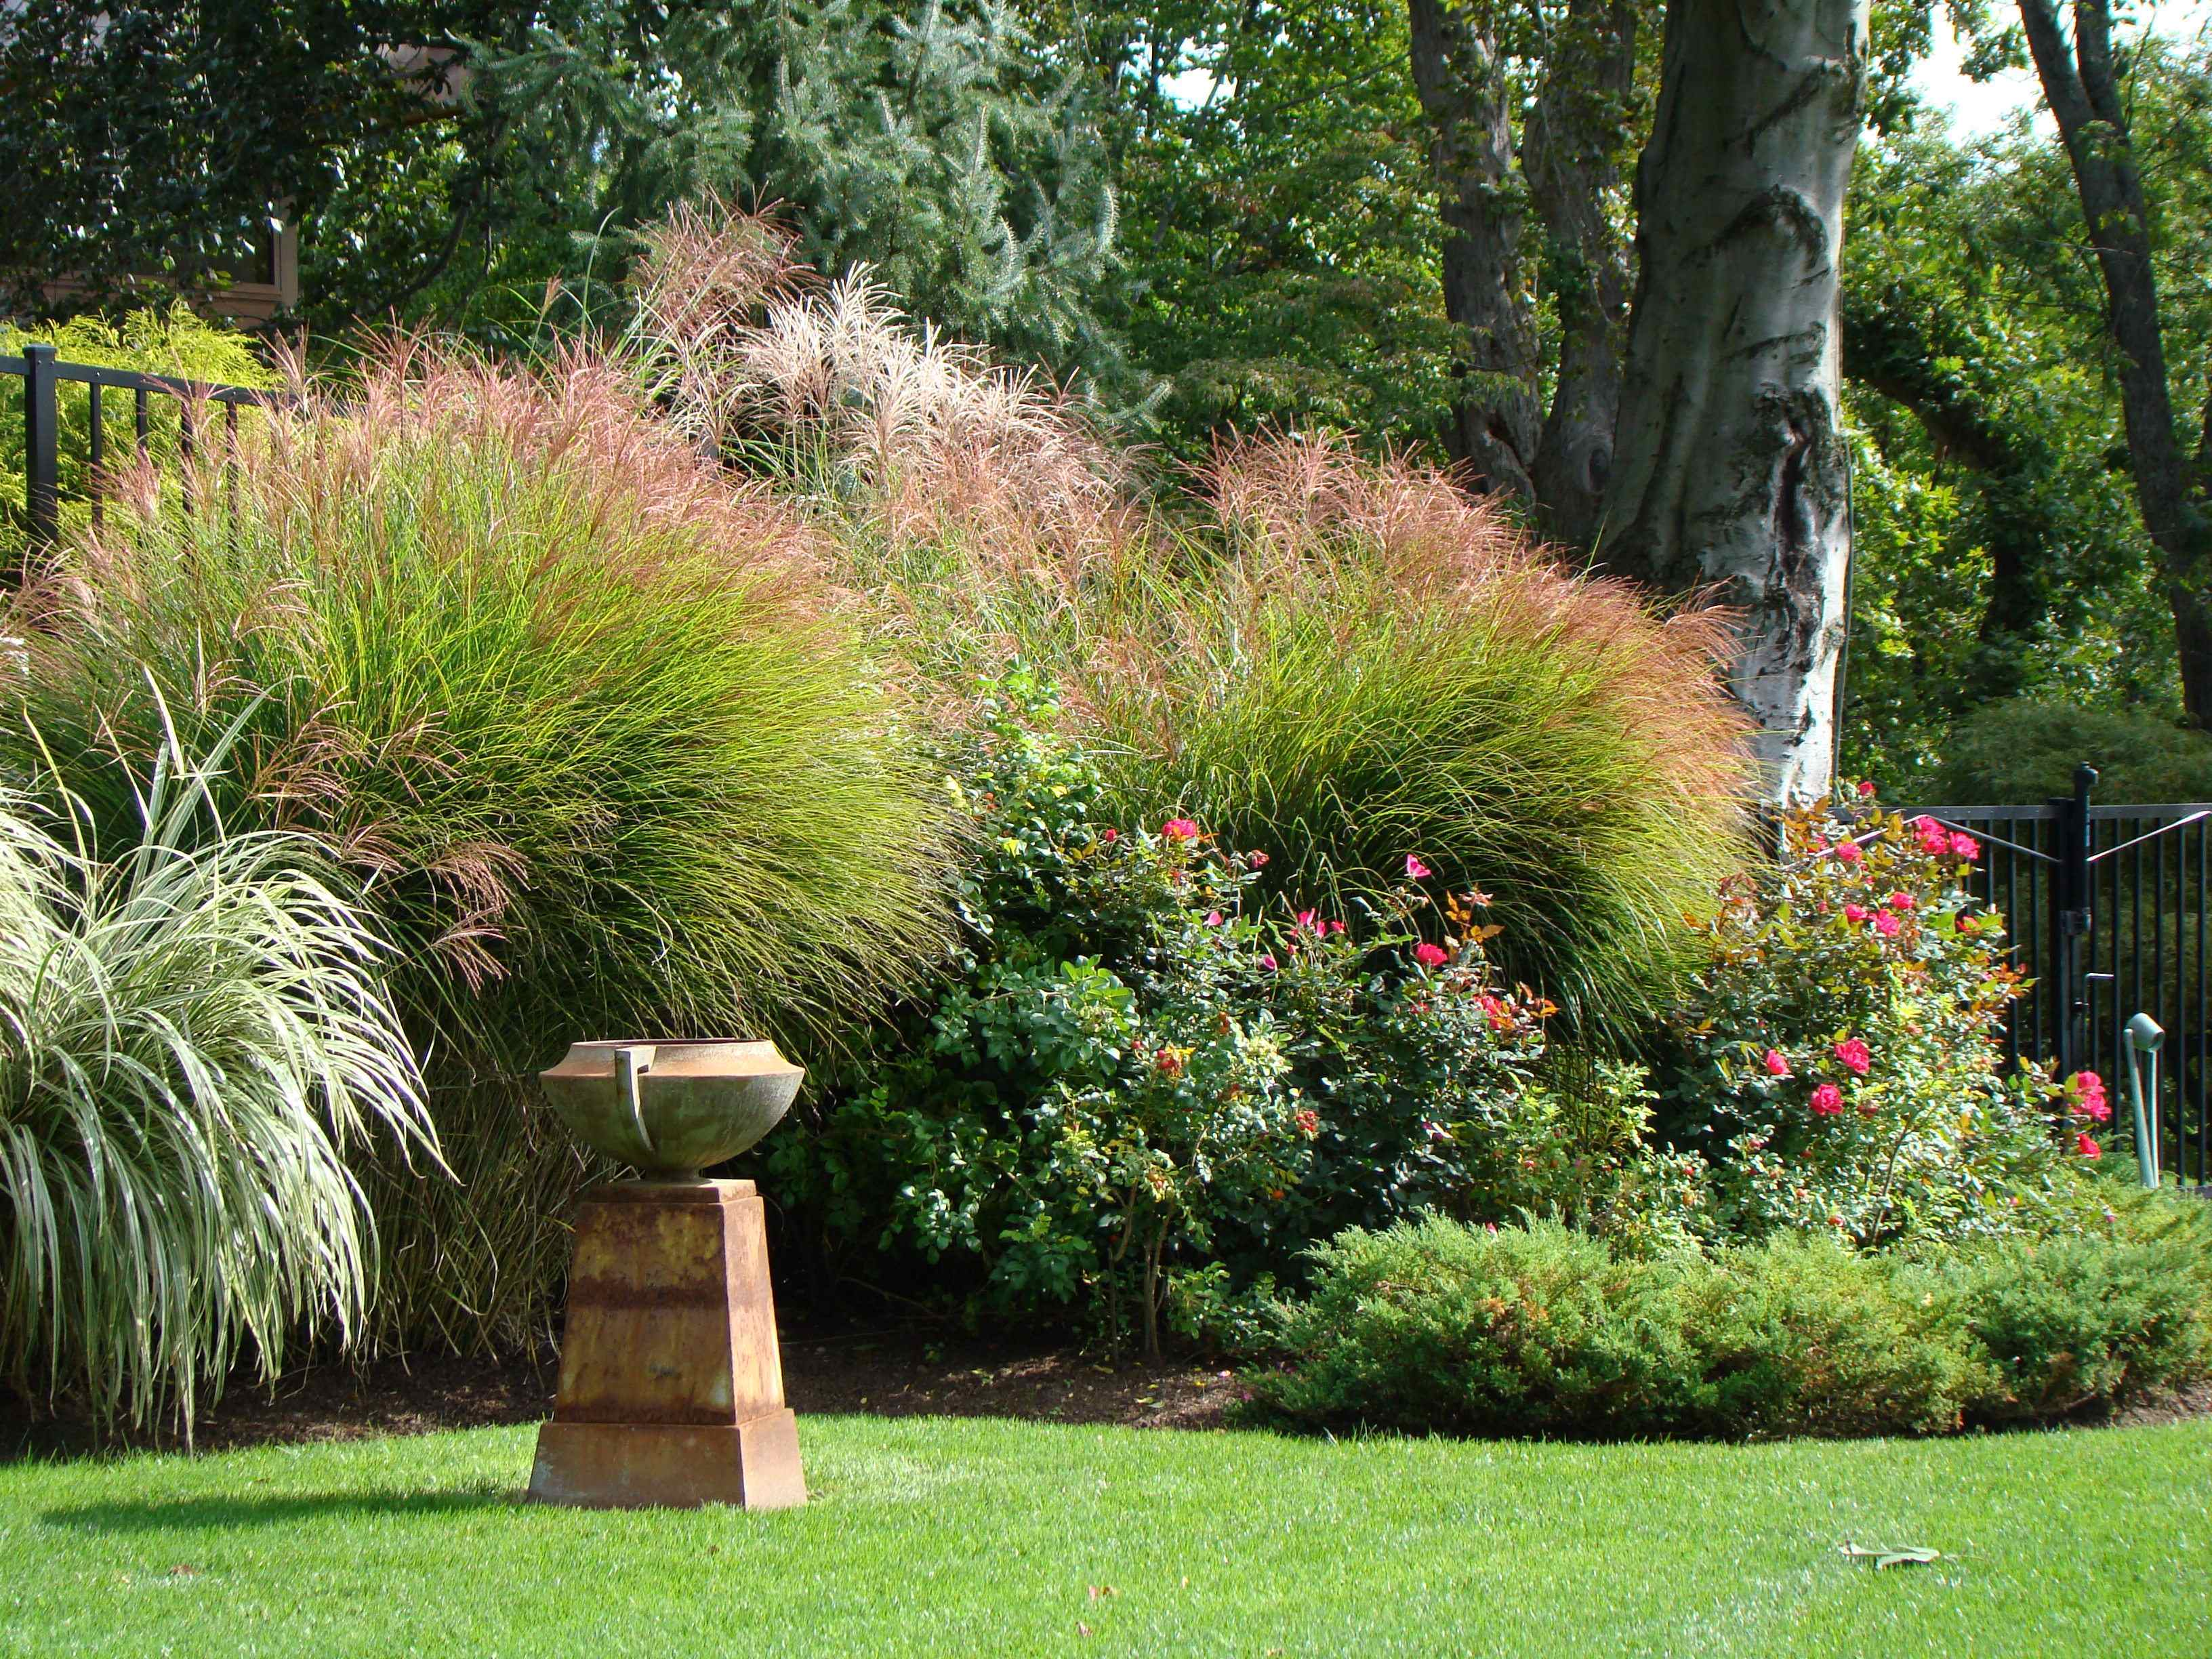 Top 3 Reasons You Should Hire a Professional Landscape Designer